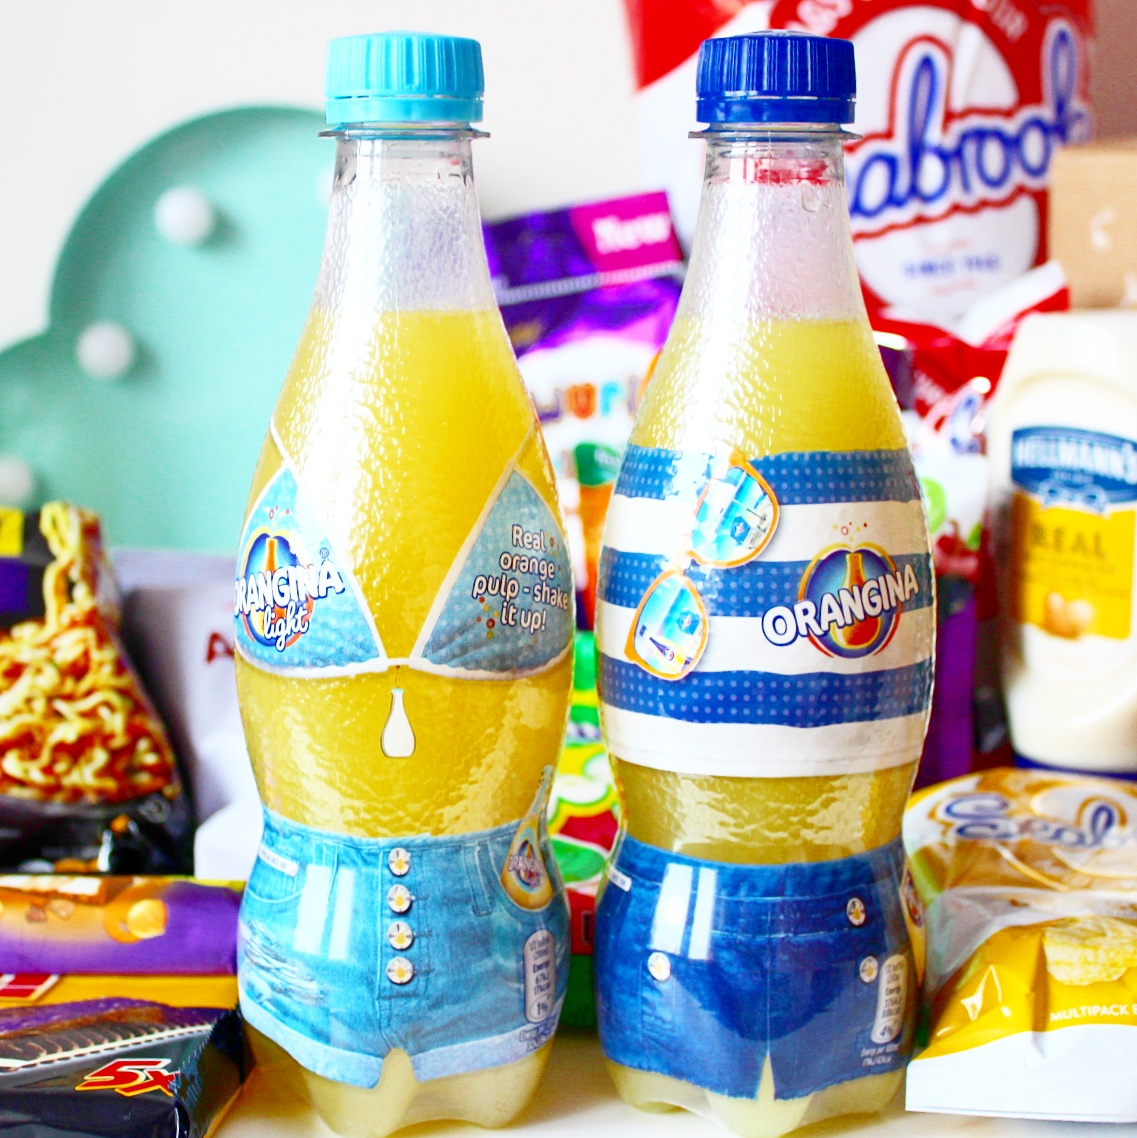 Orangina Limited Edition Summer Bottles